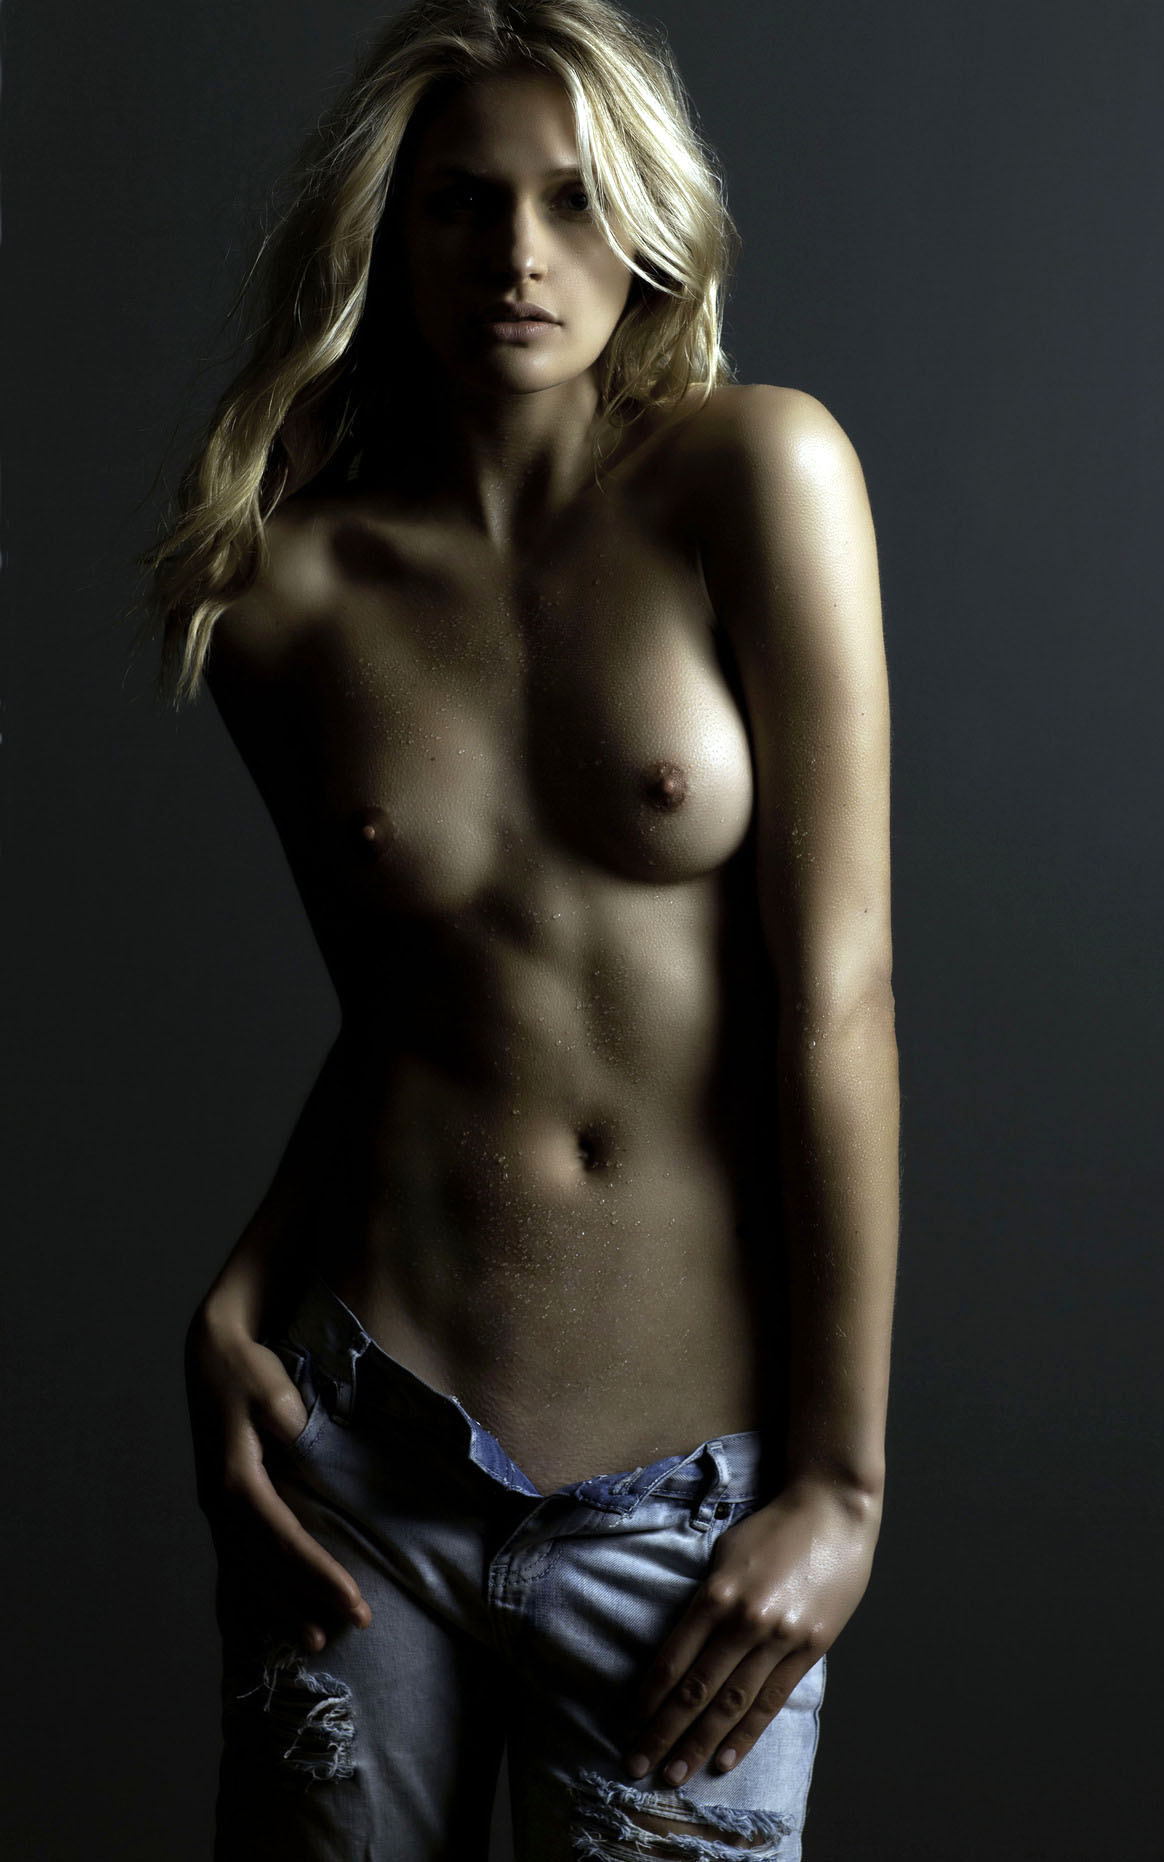 hot webcam girl with big tits xvideos com